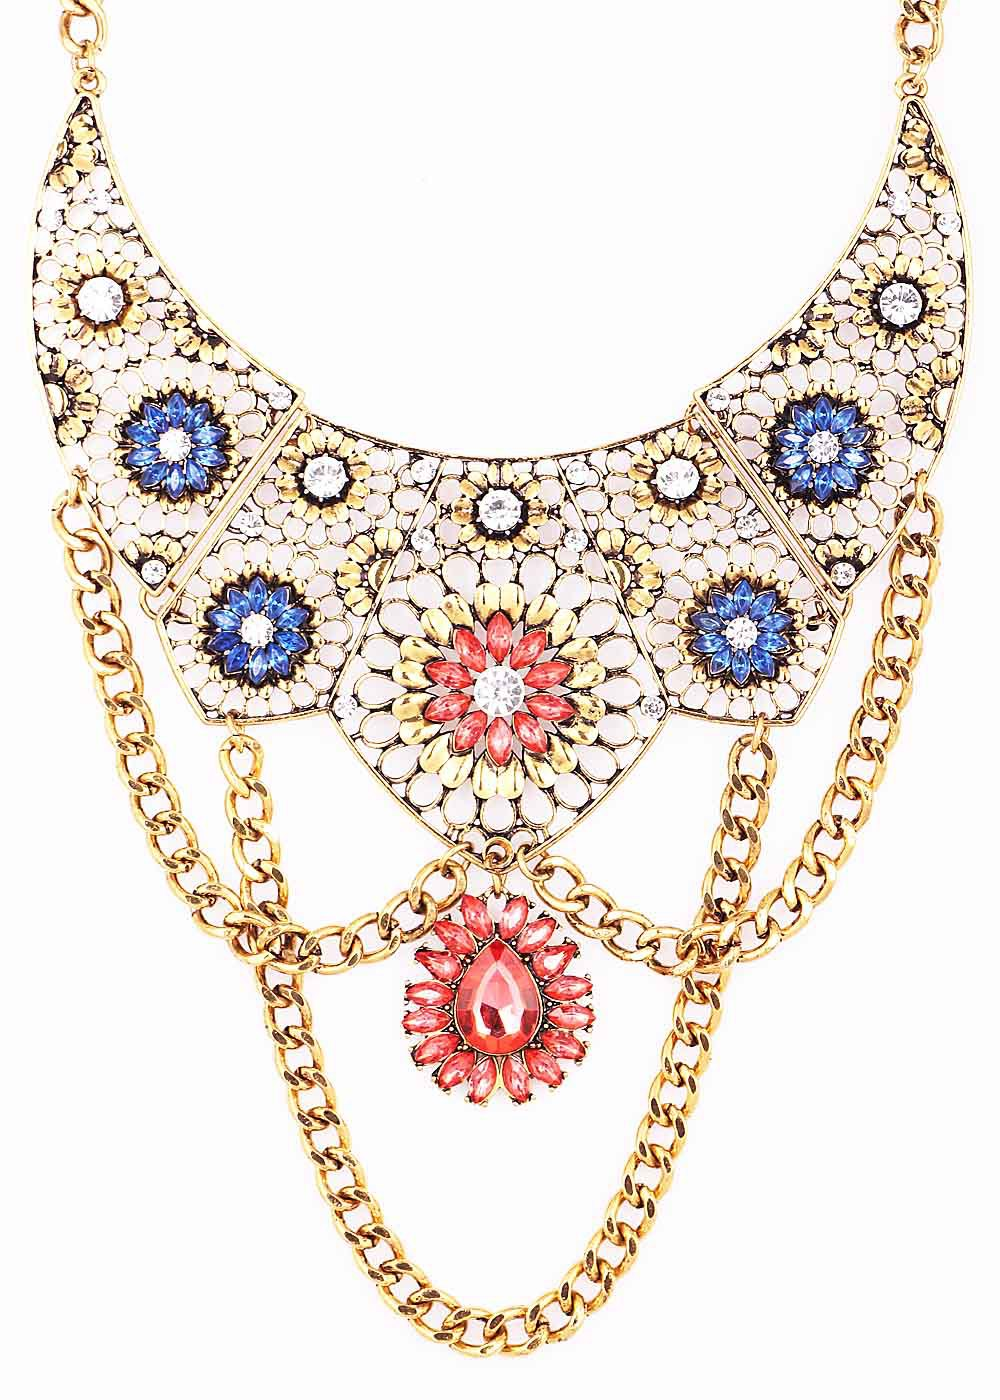 New Handmade Fashion Woman Noble Antique Gold Ox-head Style Pendant Red Crystal Bib Statement Chunky Choker Necklaces(China (Mainland))